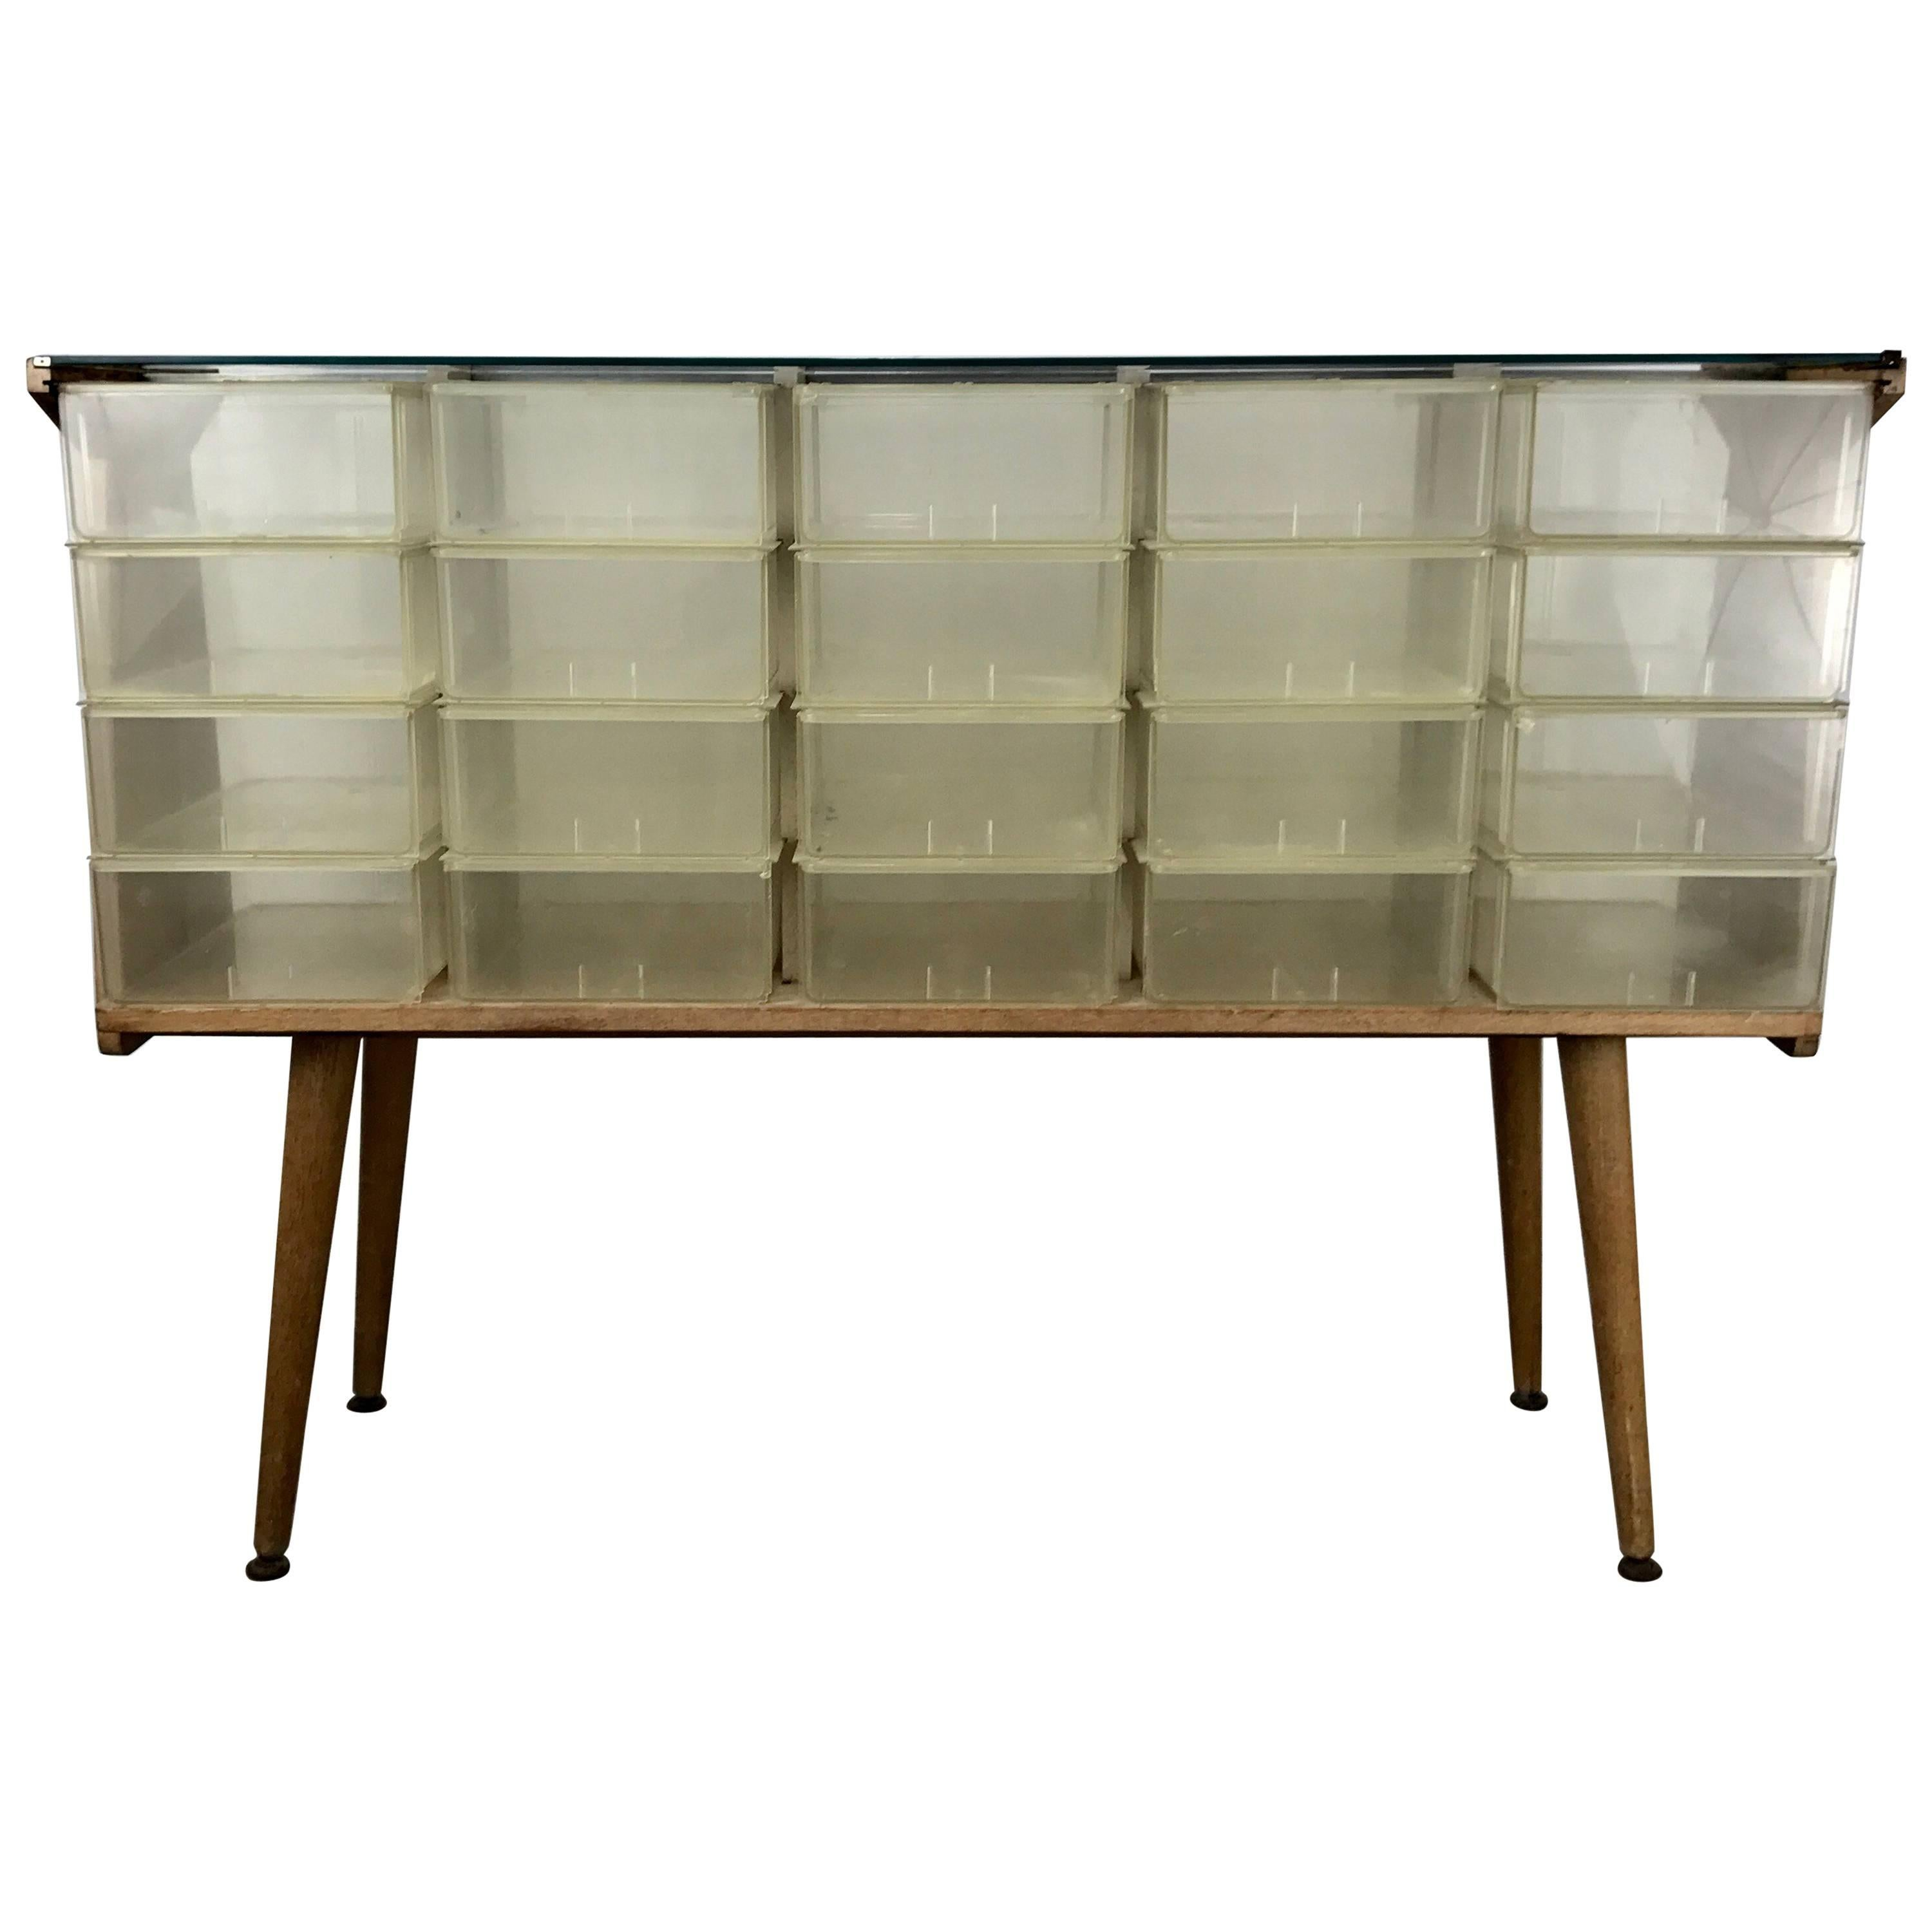 Unusual mid century modern store fixture plastic wood and glass 20 cubbies for sale at 1stdibs